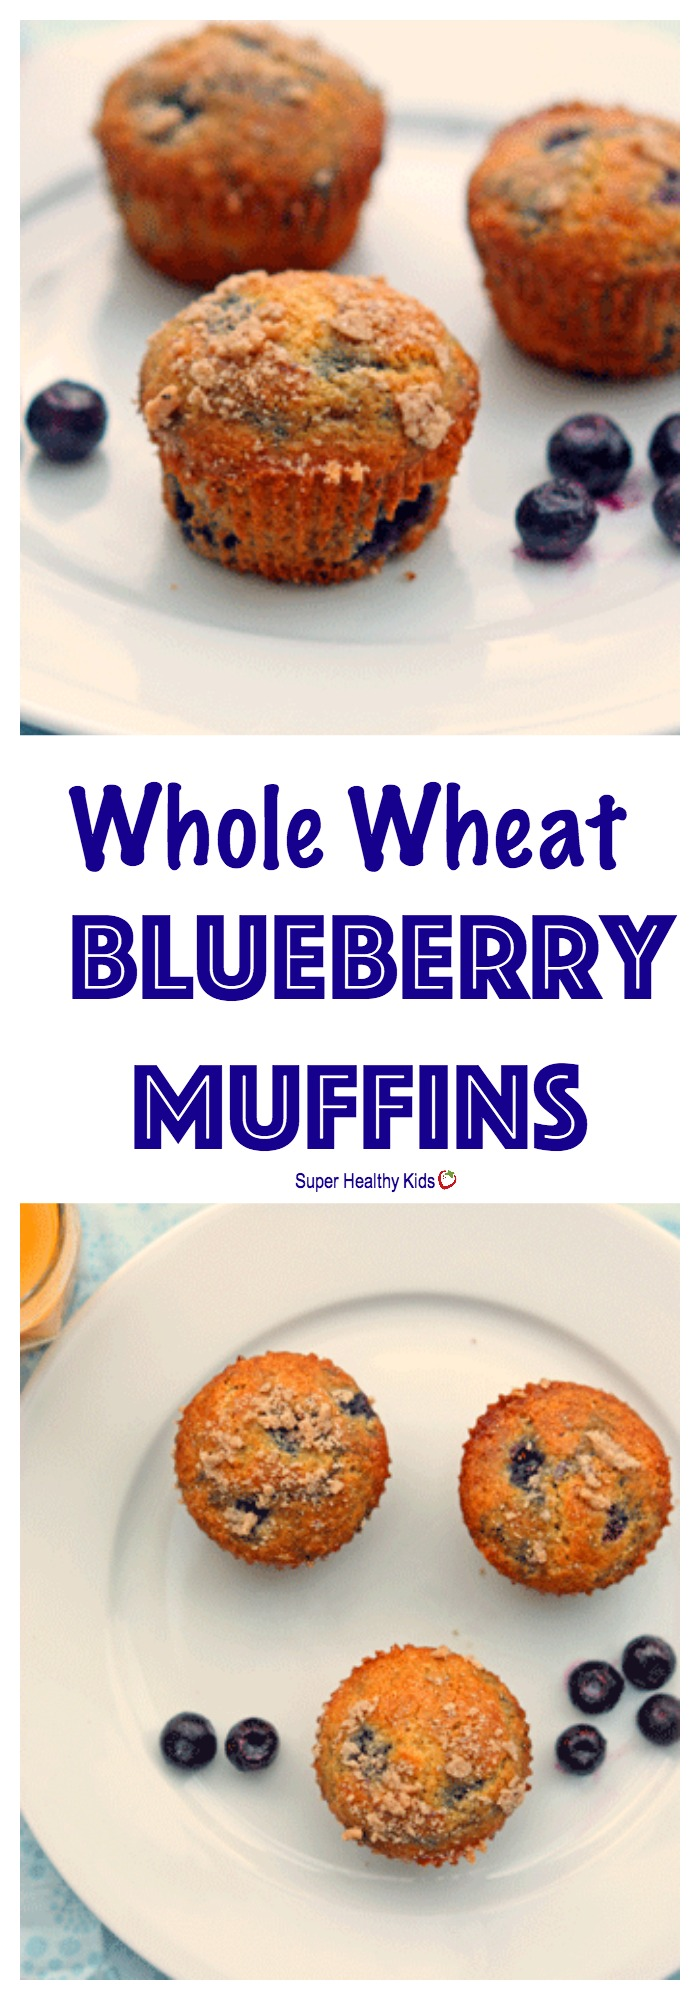 FOOD - Whole Wheat Blueberry Muffins. These muffins are moist ...